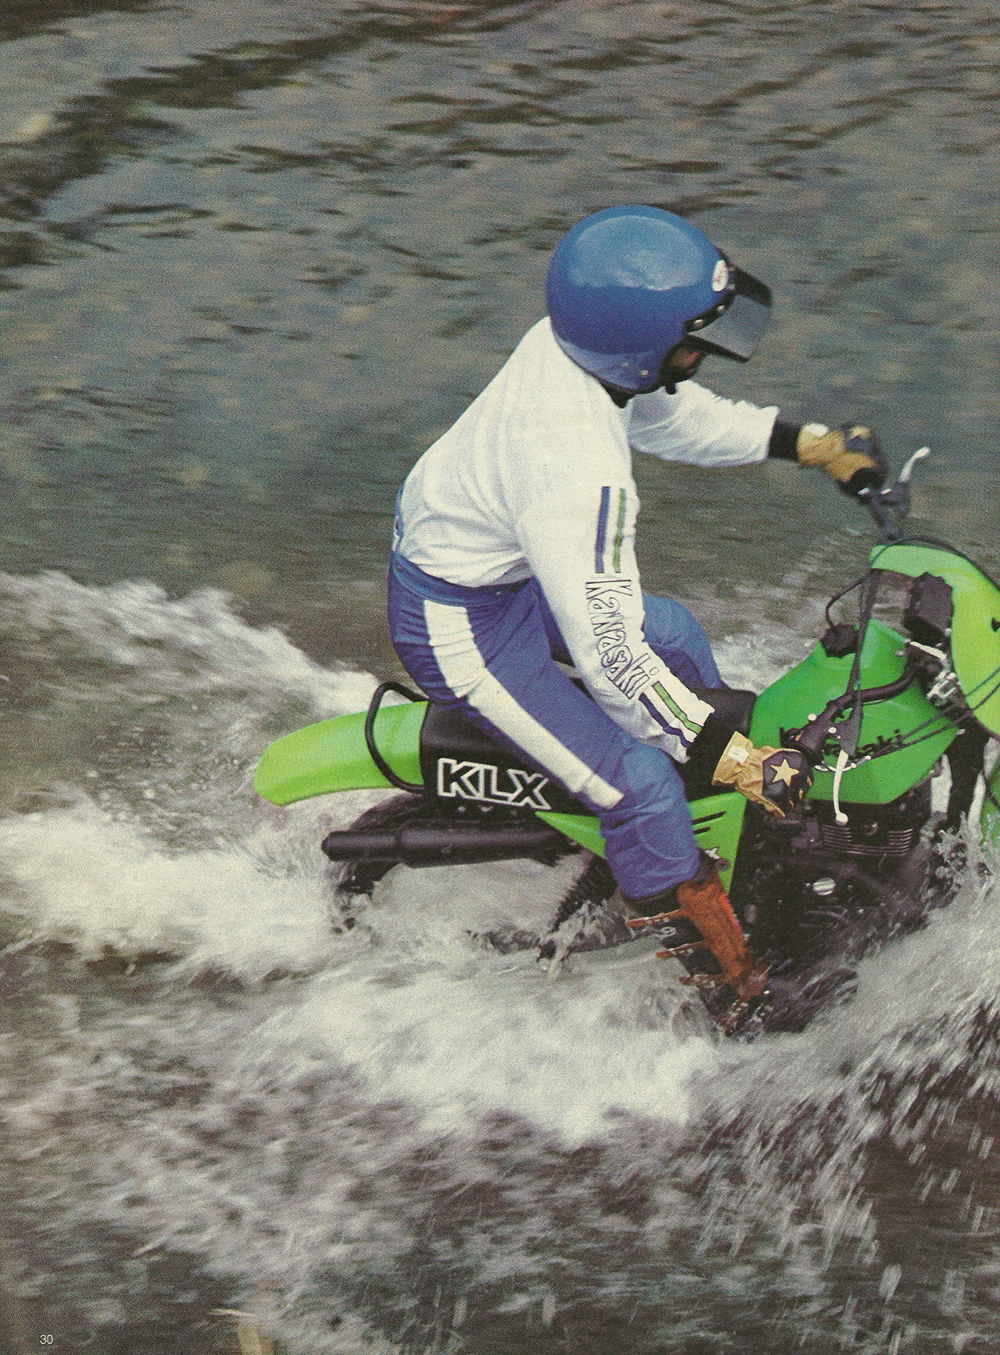 1979 Kawasaki KLX250 off road test 2.jpg